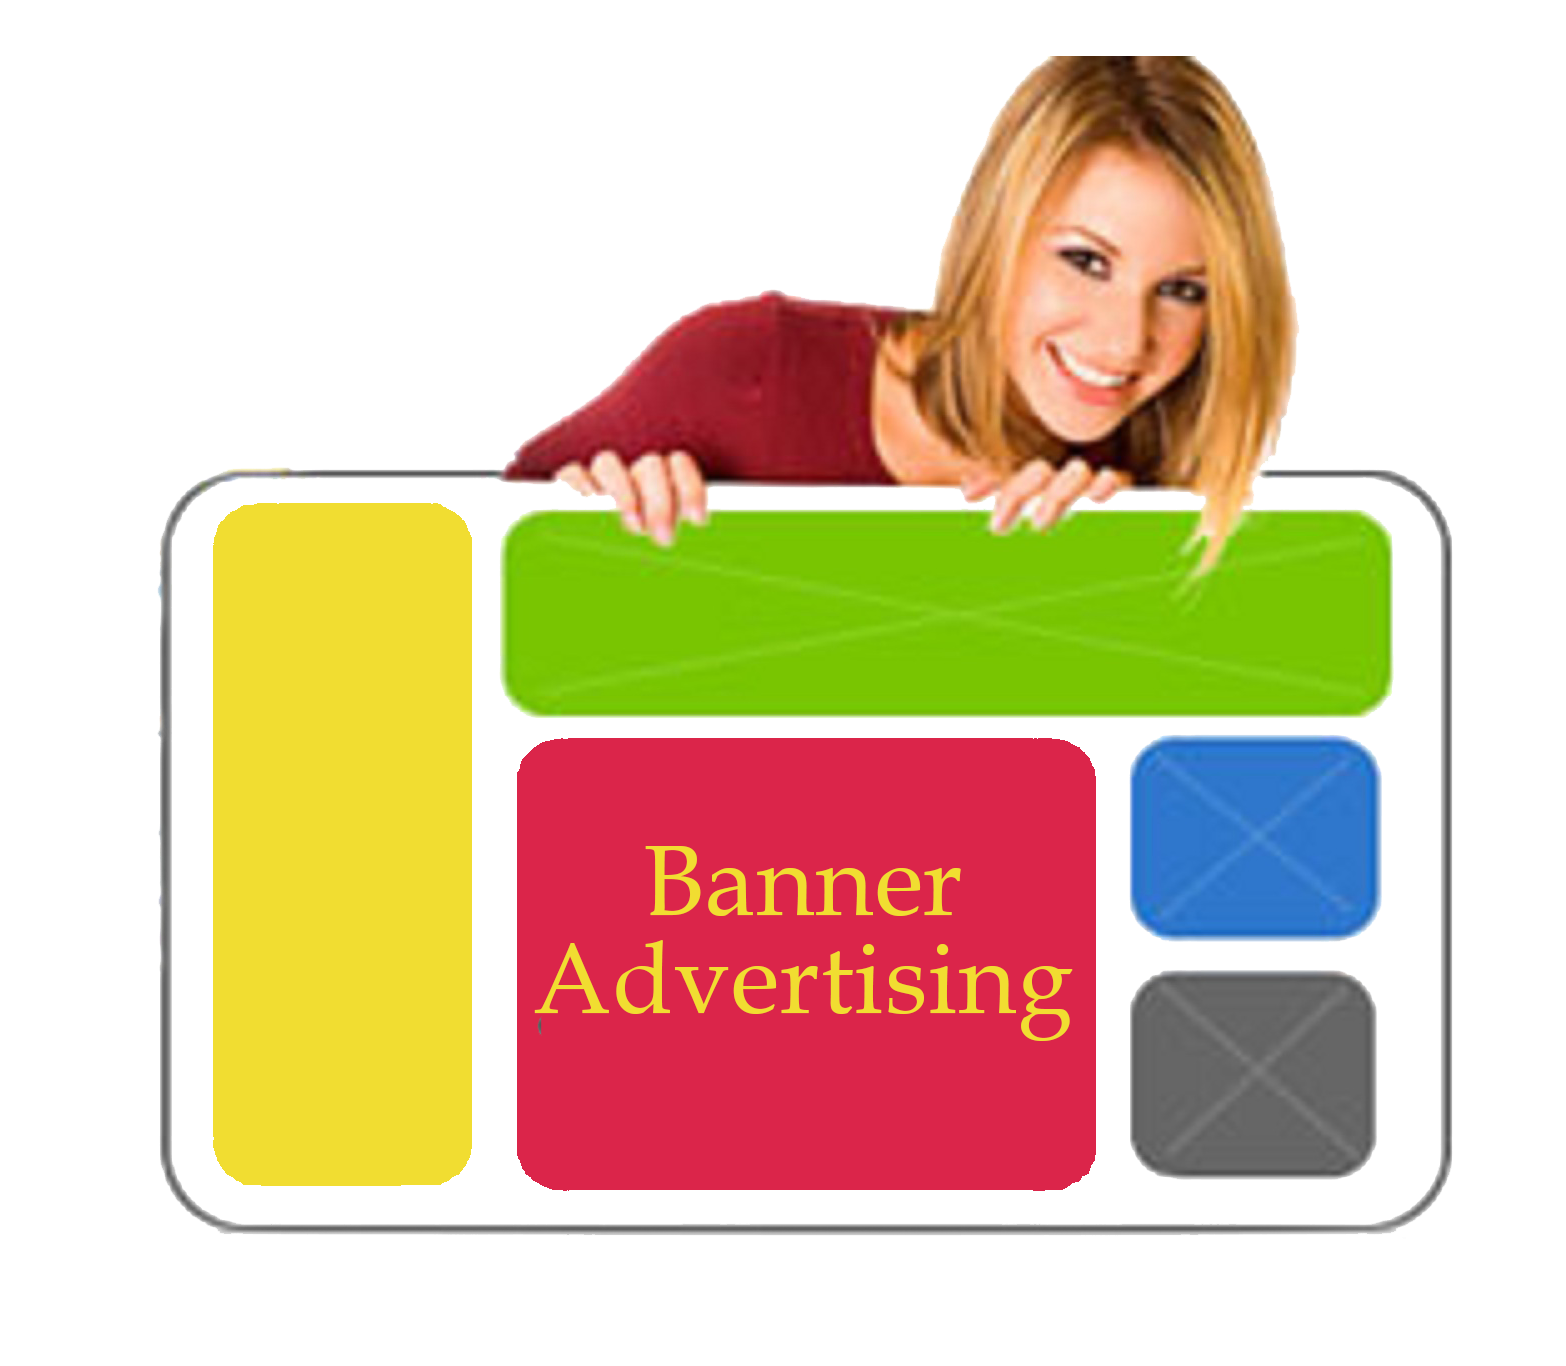 Get Your Business Banner Ad Our Website For 7 Days